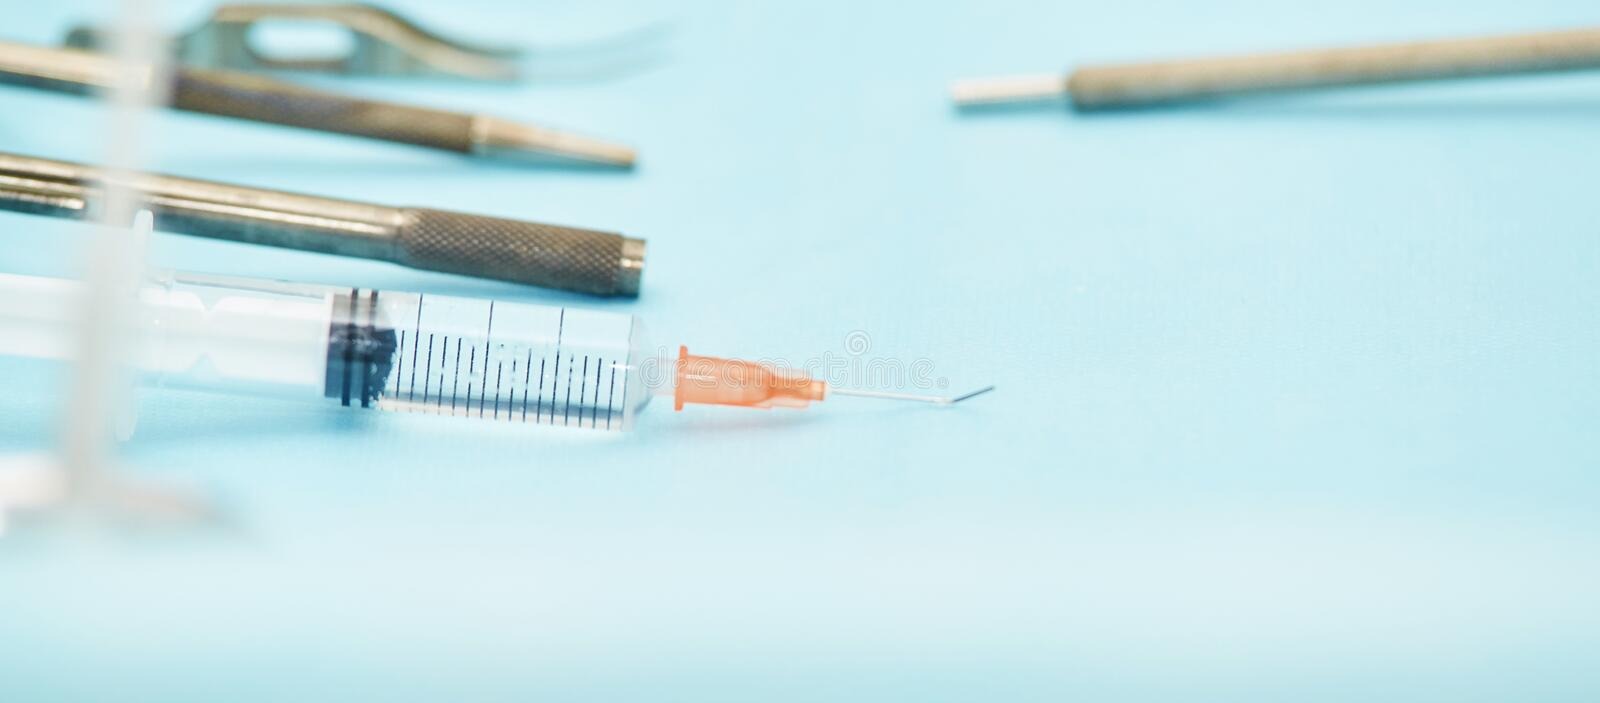 Ophthalmology laser microscope operation. Clinic room with doctor and parient. Gloves and medicine tools.  stock photography